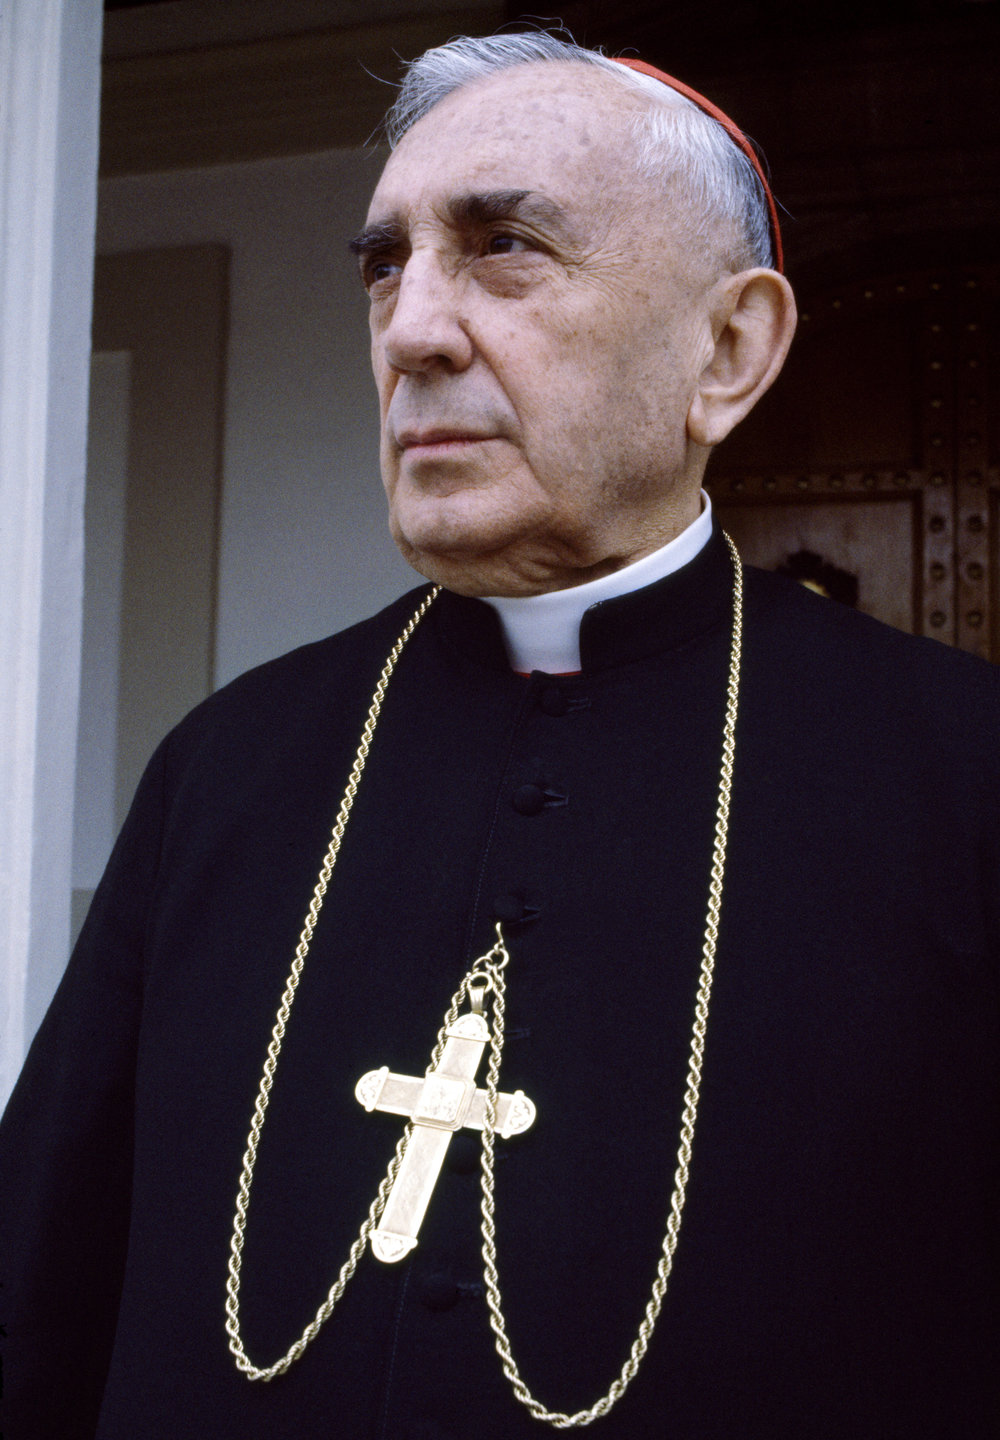 Mario Cardinal Casariego, (1909-1983), the Roman Catholic Archbishop of Guatemala, stands for a photograph in front of Iglesia Central in Guatemala City, Guatemala February 1, 1983. Cardinal Casariego died from a heart attack following the March 1983 visit of Pope John Paul ll to Guatemala. Throughout Guatemala's 36-year civil war Mario Cardinal Casariego was a supporter of the Guatemalan army's authoritarian regime.